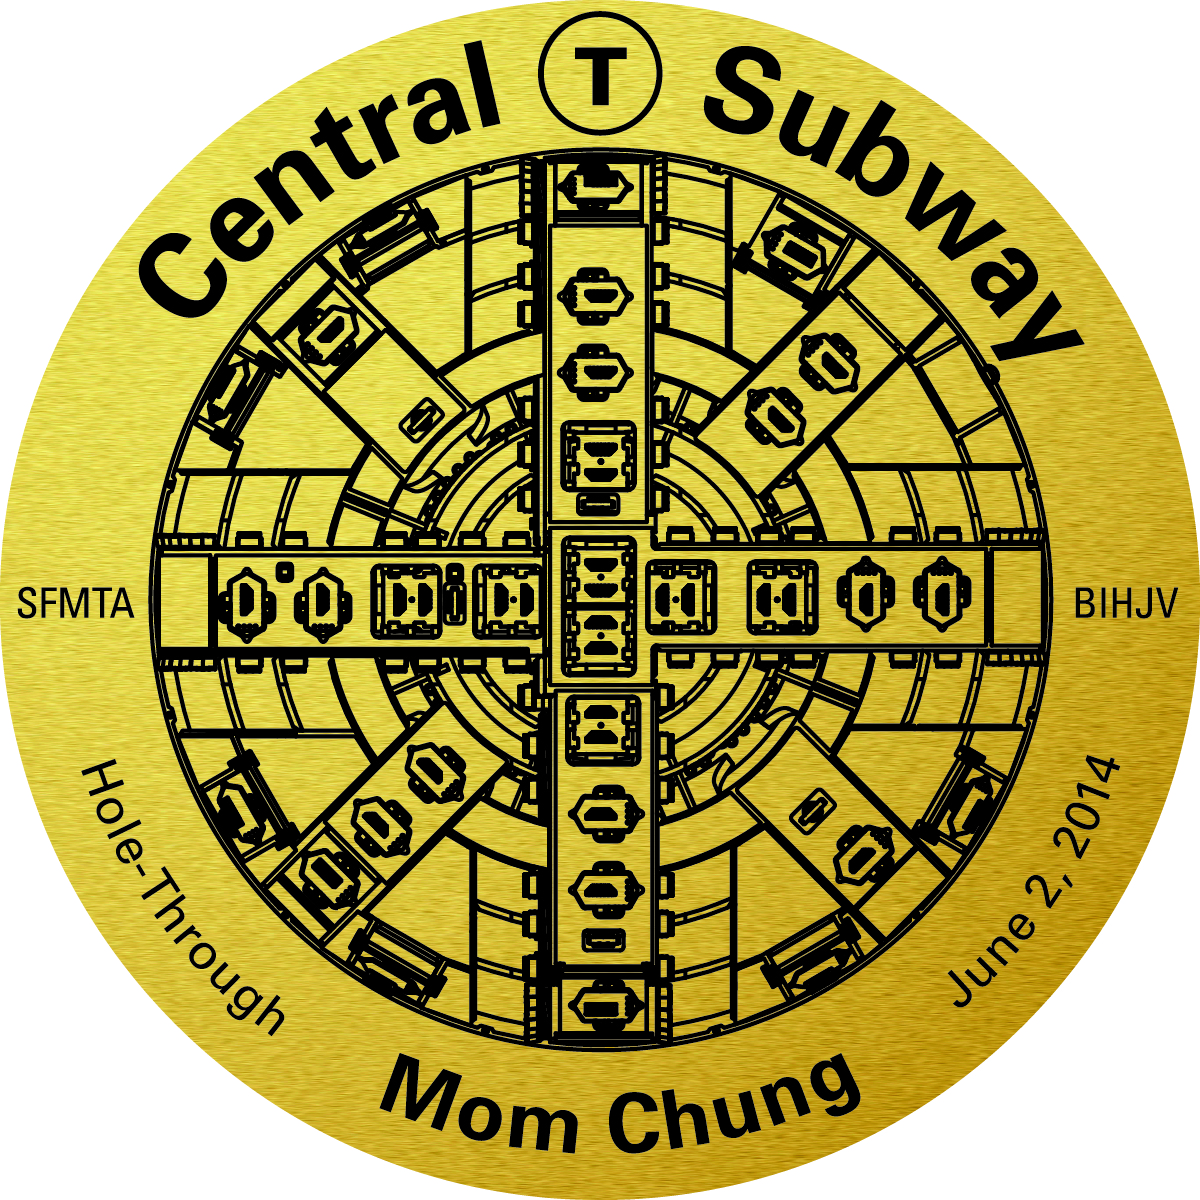 TBM_medallion_MomChung_Final_gold-01.jpg